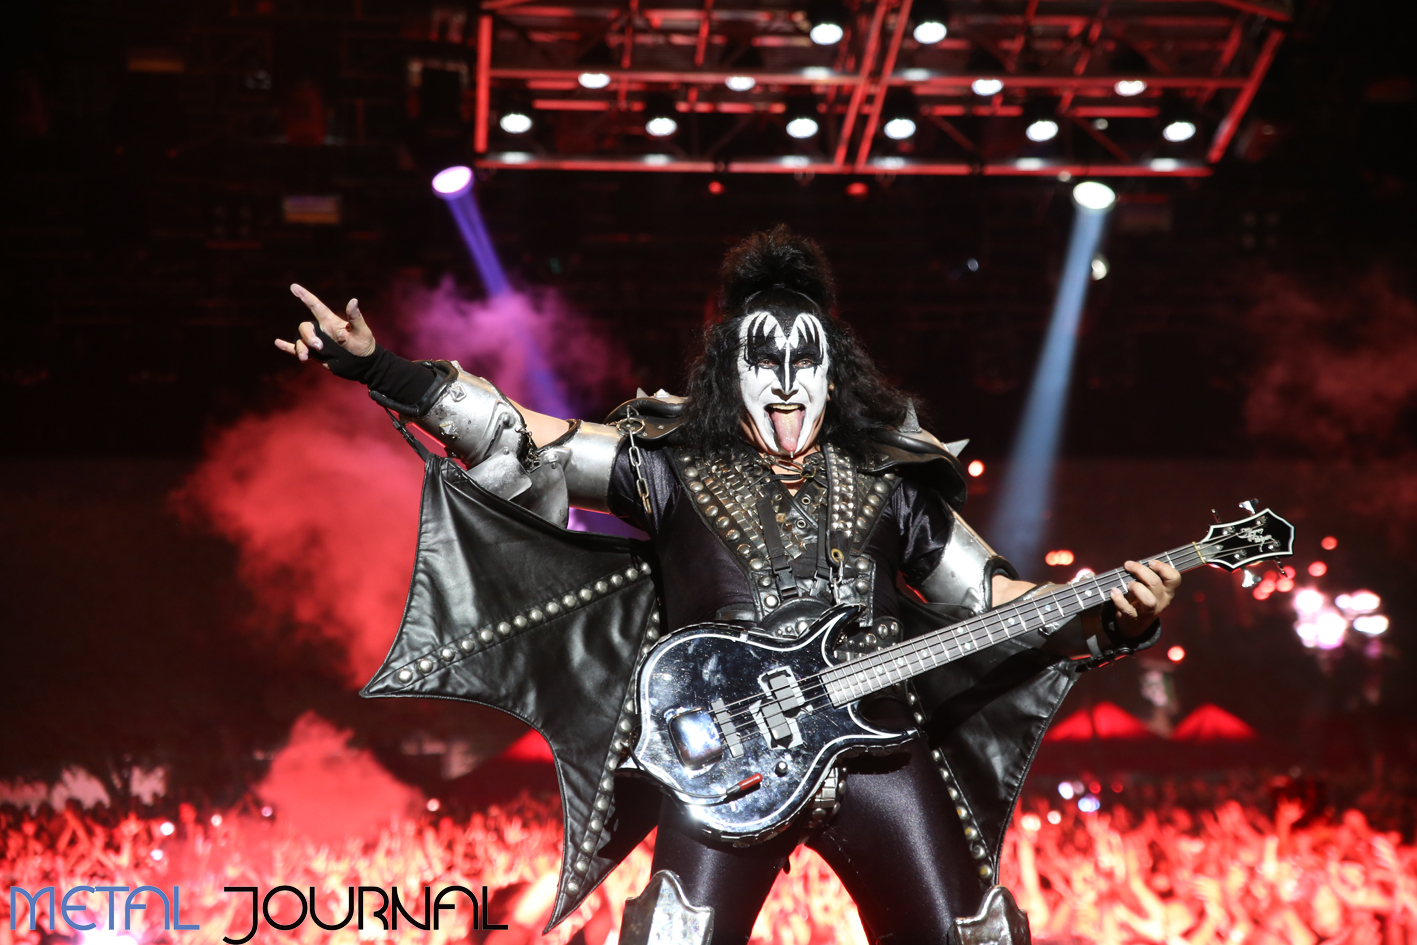 kiss rock fest 18 - metal journal pic 1